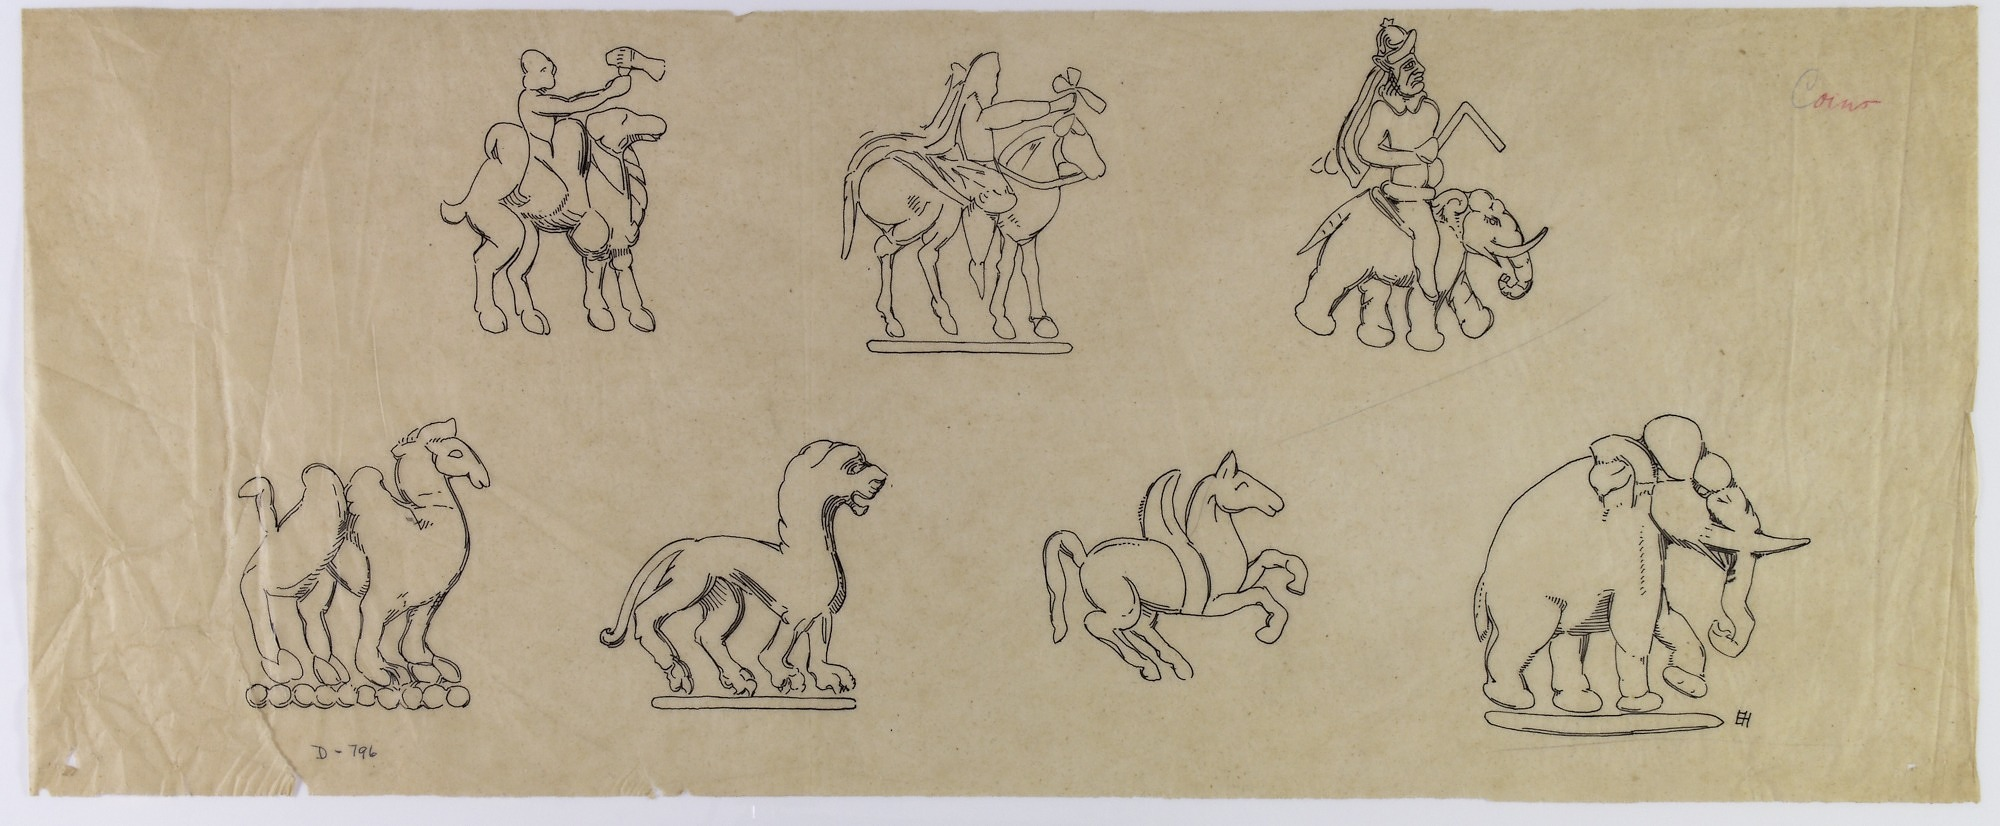 Iran: Animal Figures from Coins [drawing]